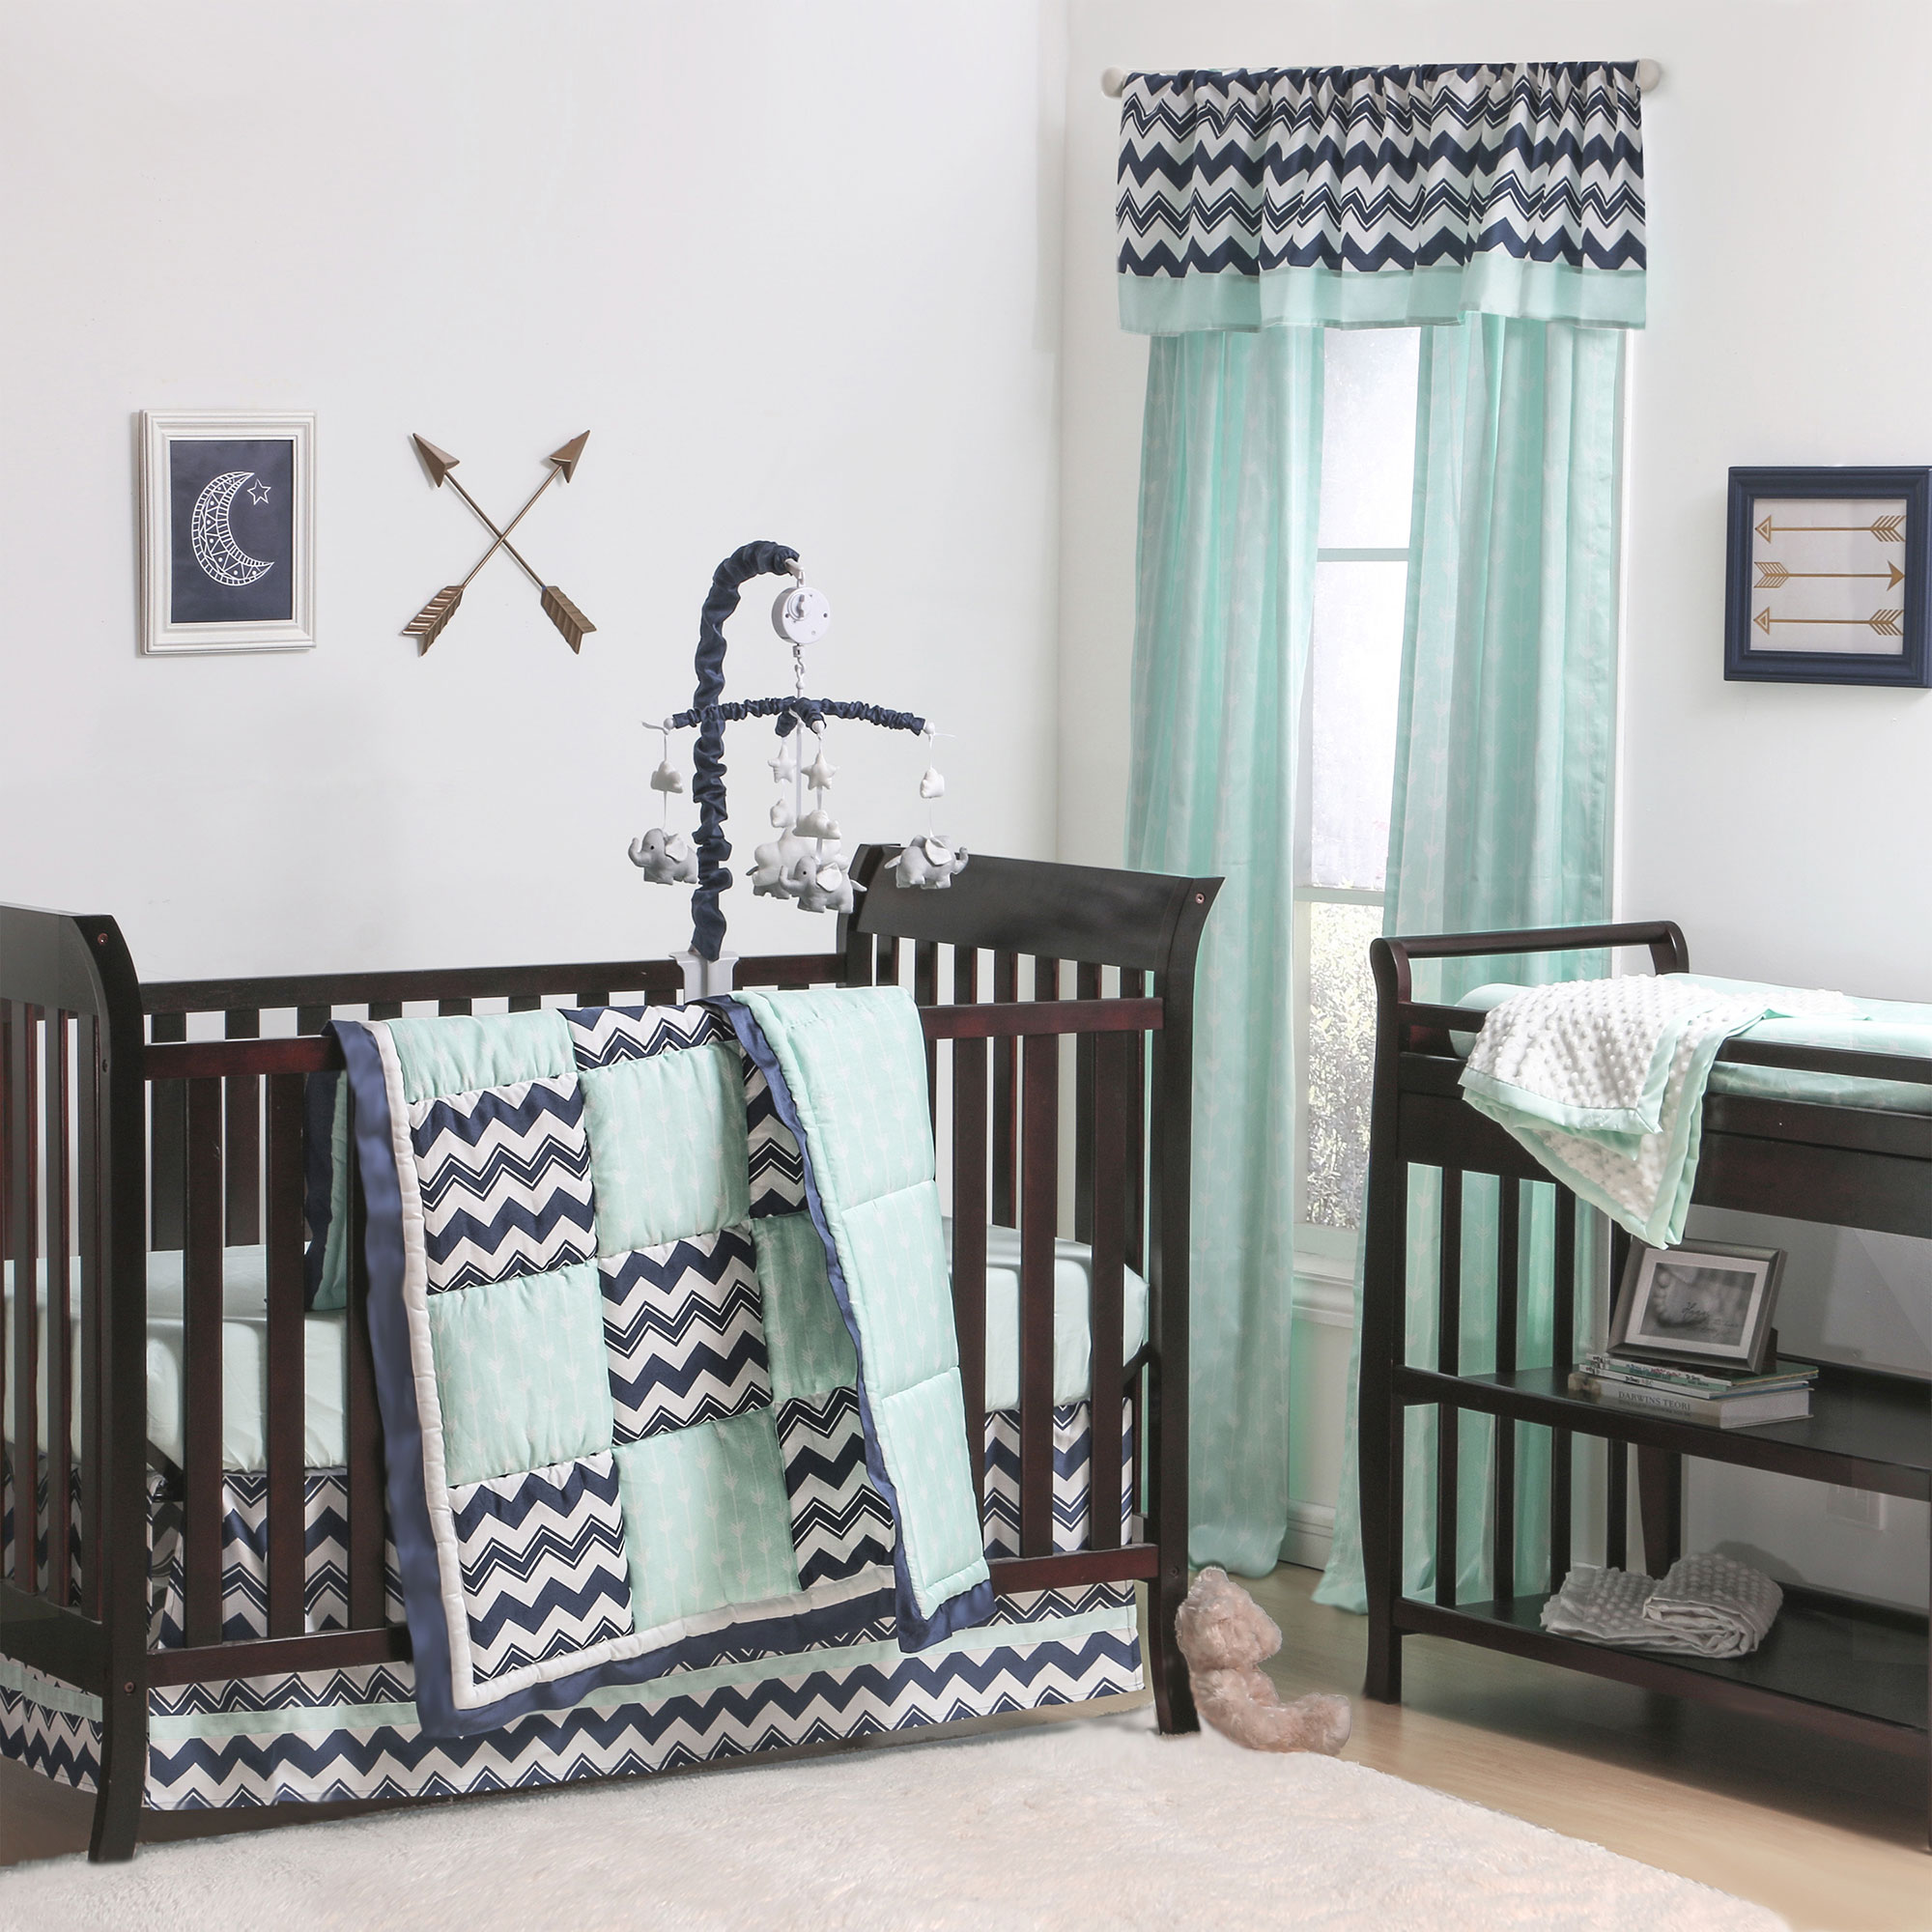 The Peanut Shell 4 Piece Baby Crib Bedding Set - Navy Blue Zig Zag Geometric and Mint Green Arrow Print - 100% Cotton Quilt, Dust Ruffle, Fitted Sheet, and Mobile